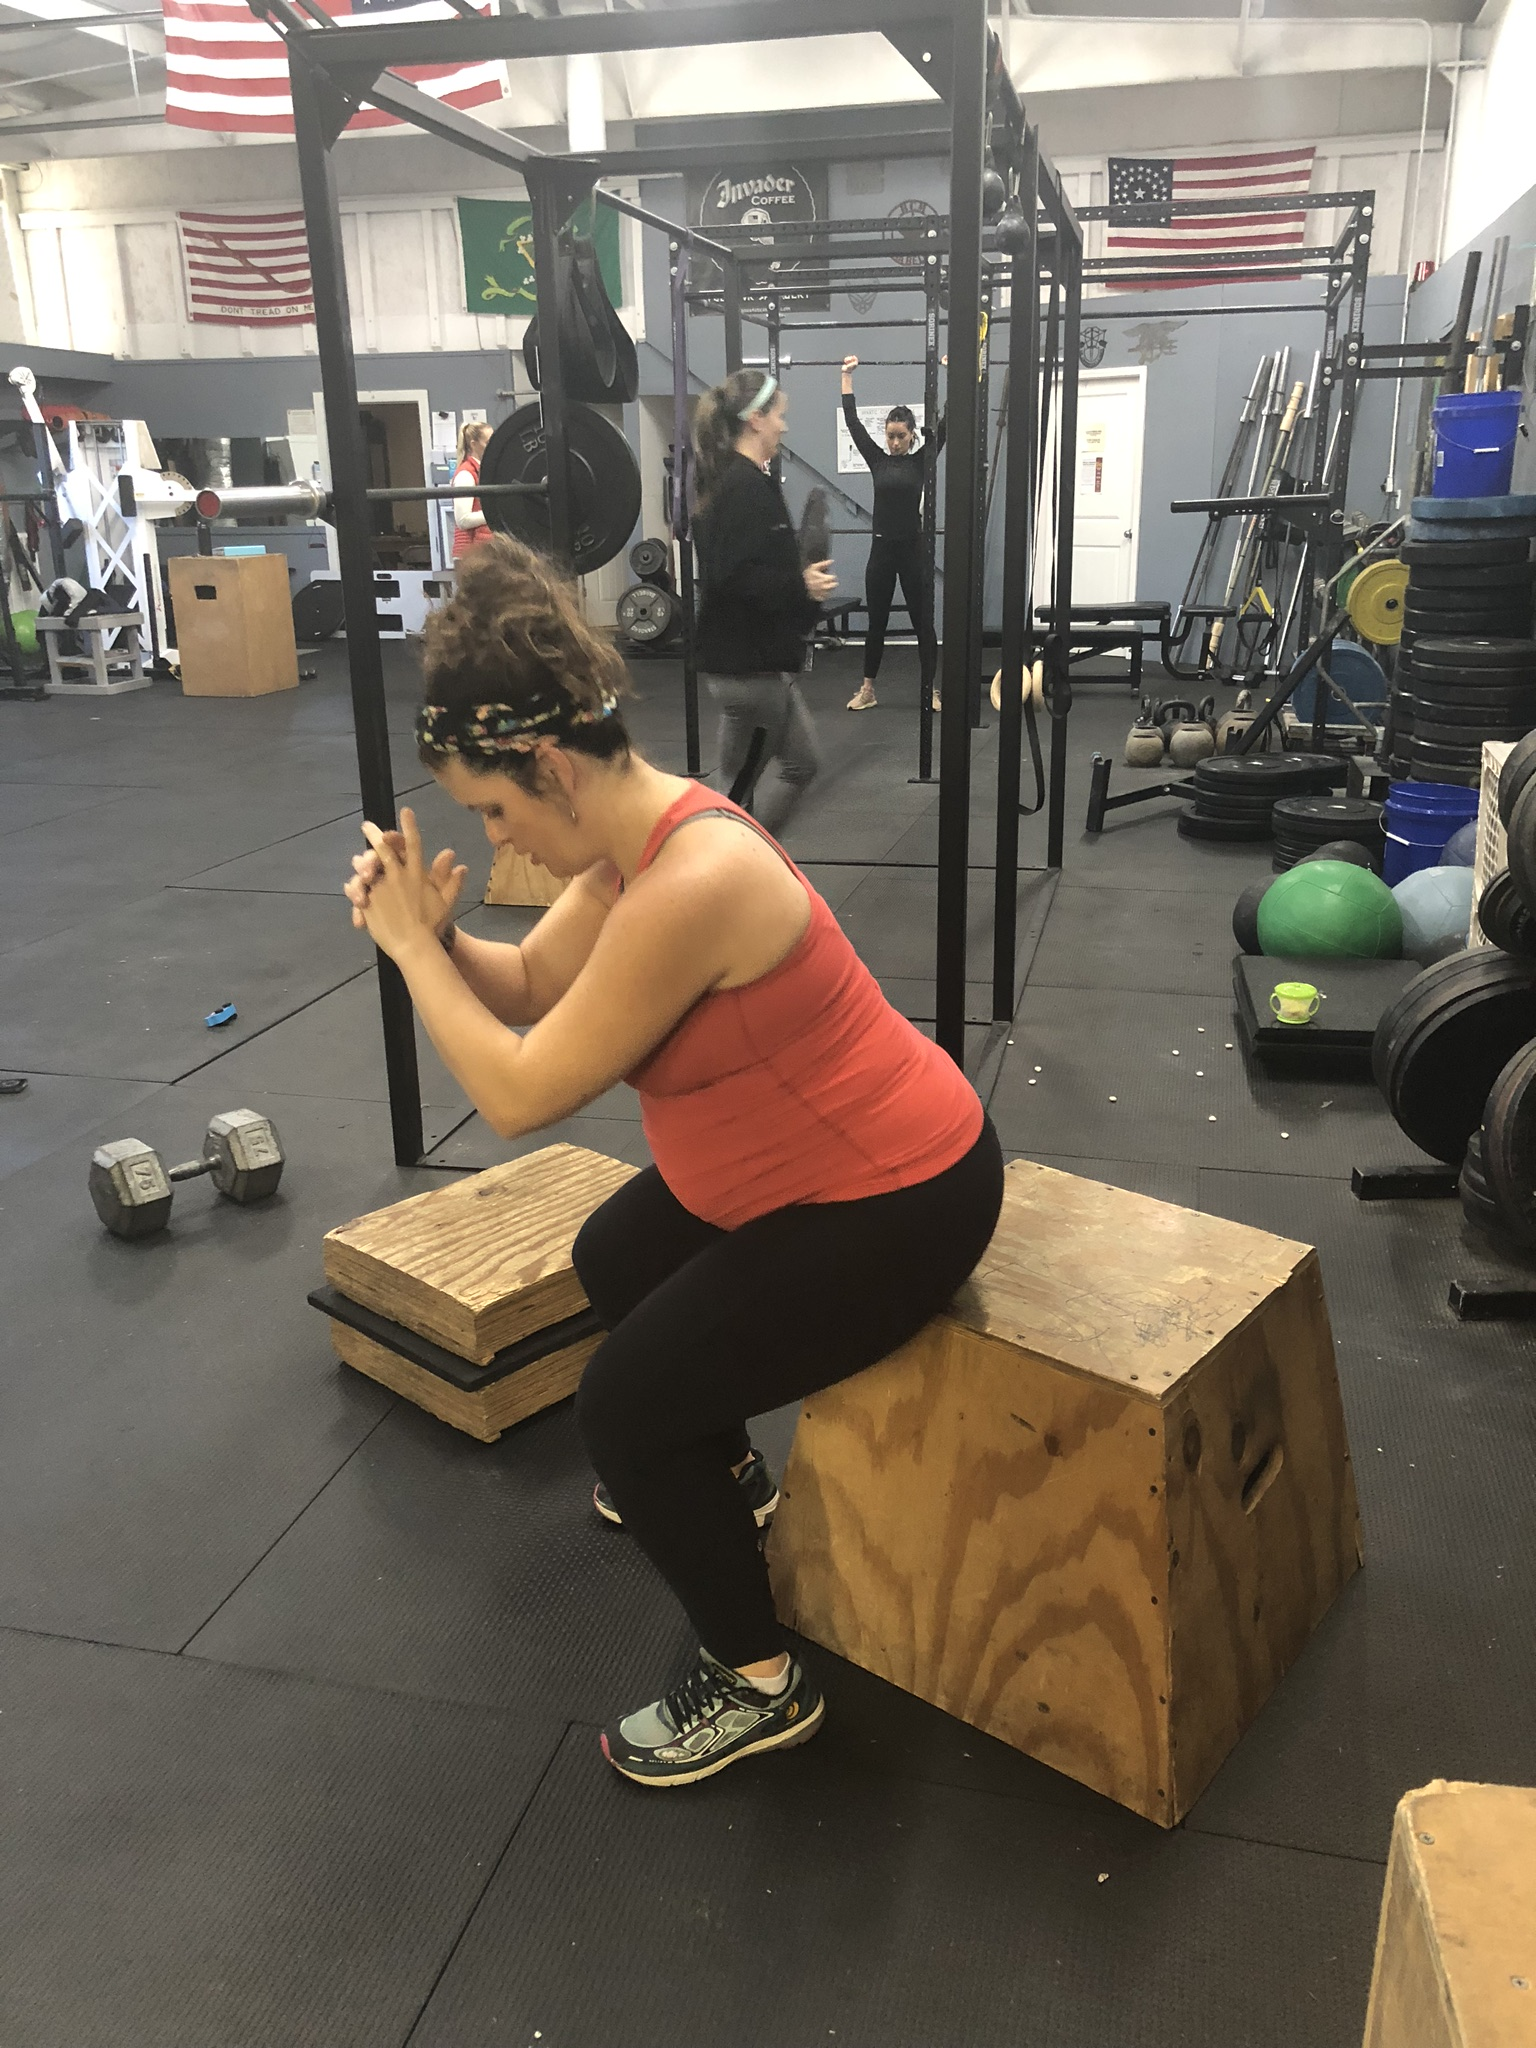 Prenatal: Unweighted Box Squat for additional support during strength training